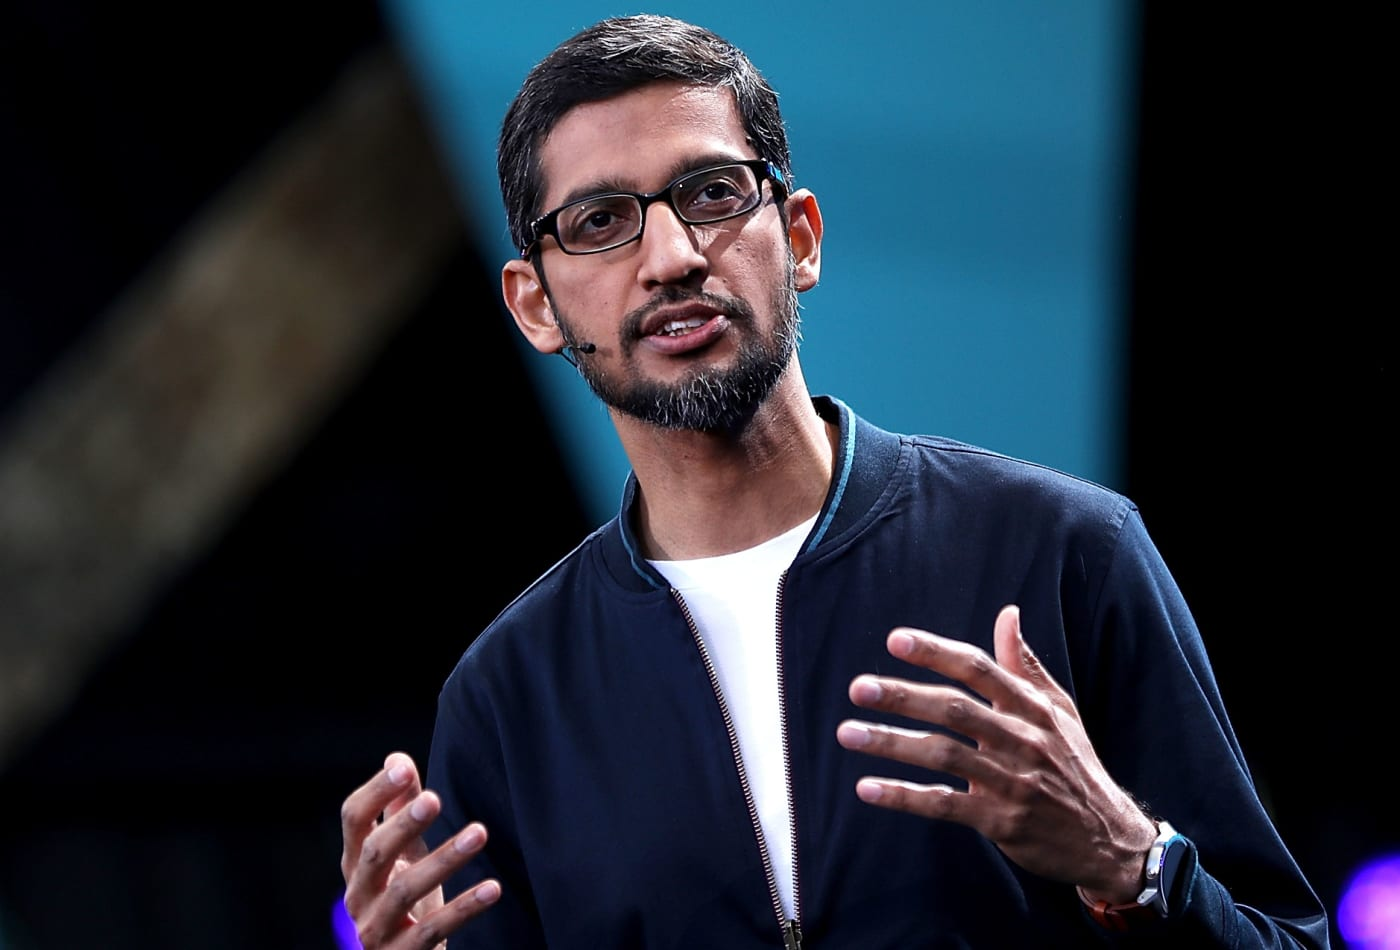 Here's the new Google software that may one day replace Android